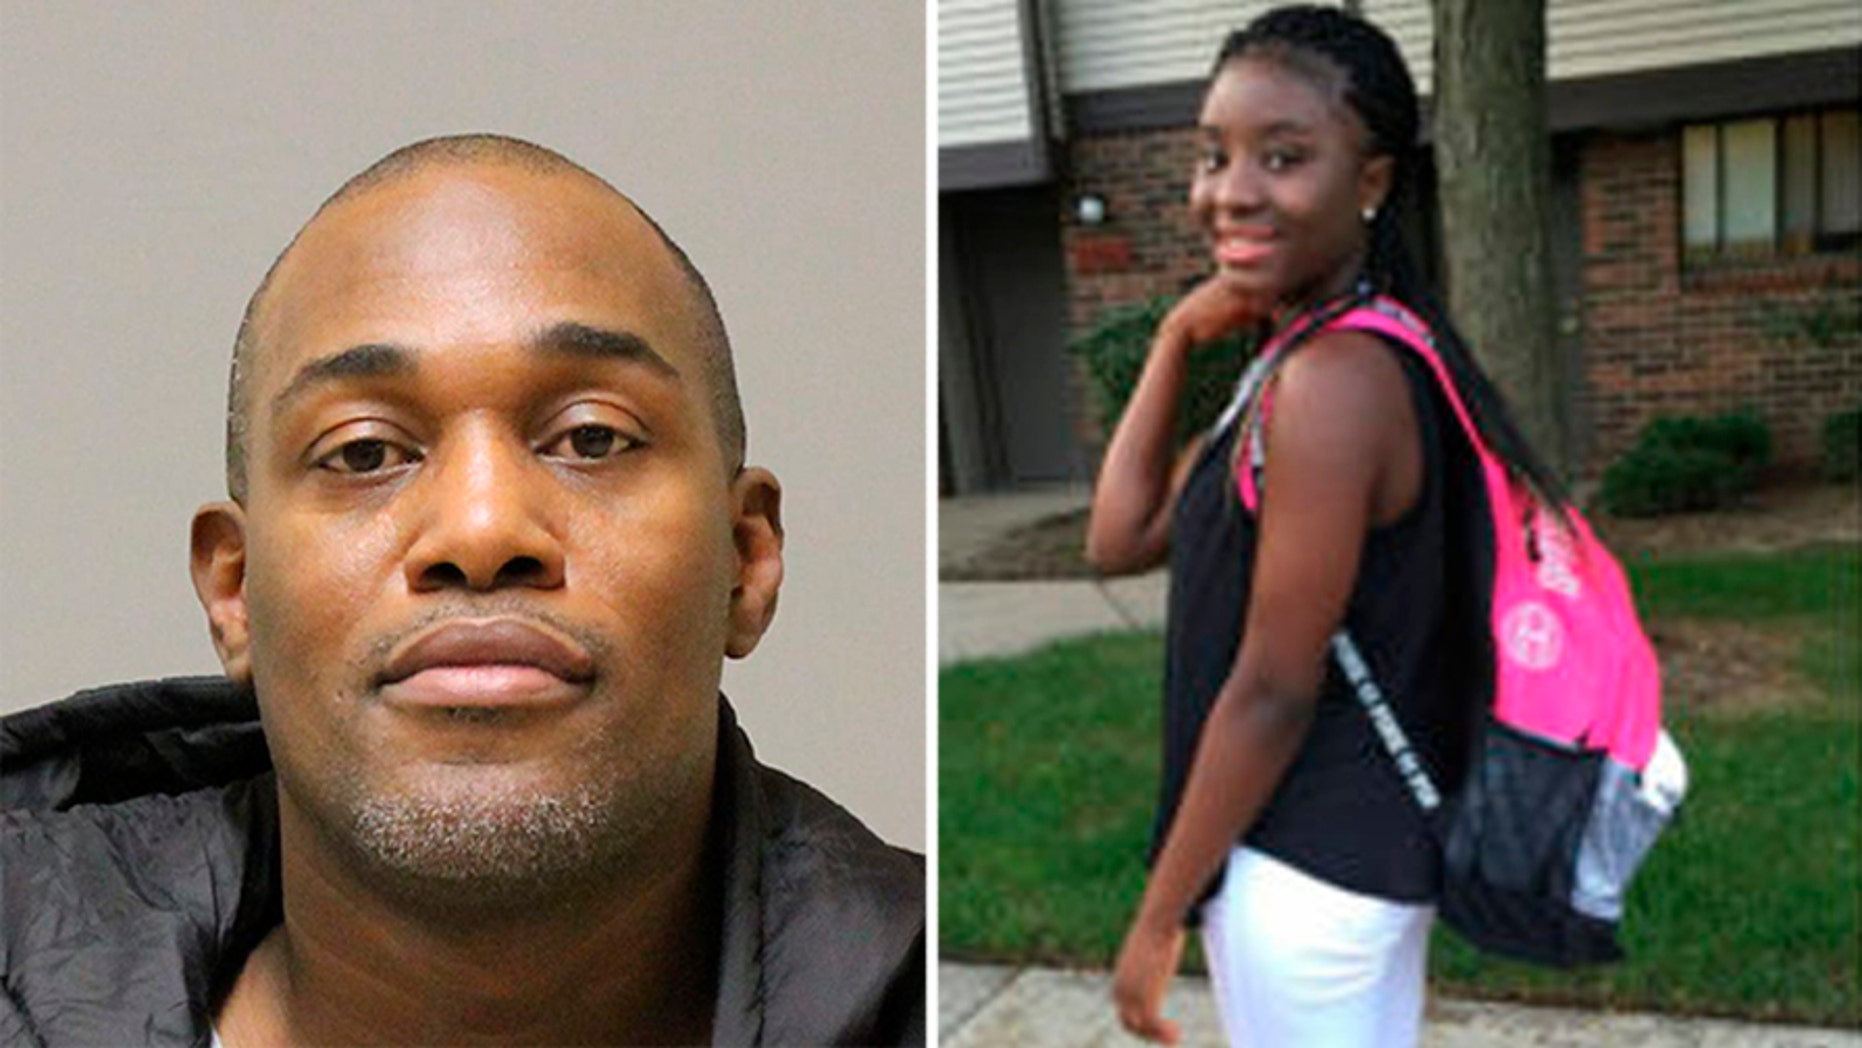 Quinn Anthony James, 42, was reportedly accused of raping Mujey Dumbuya, 16.